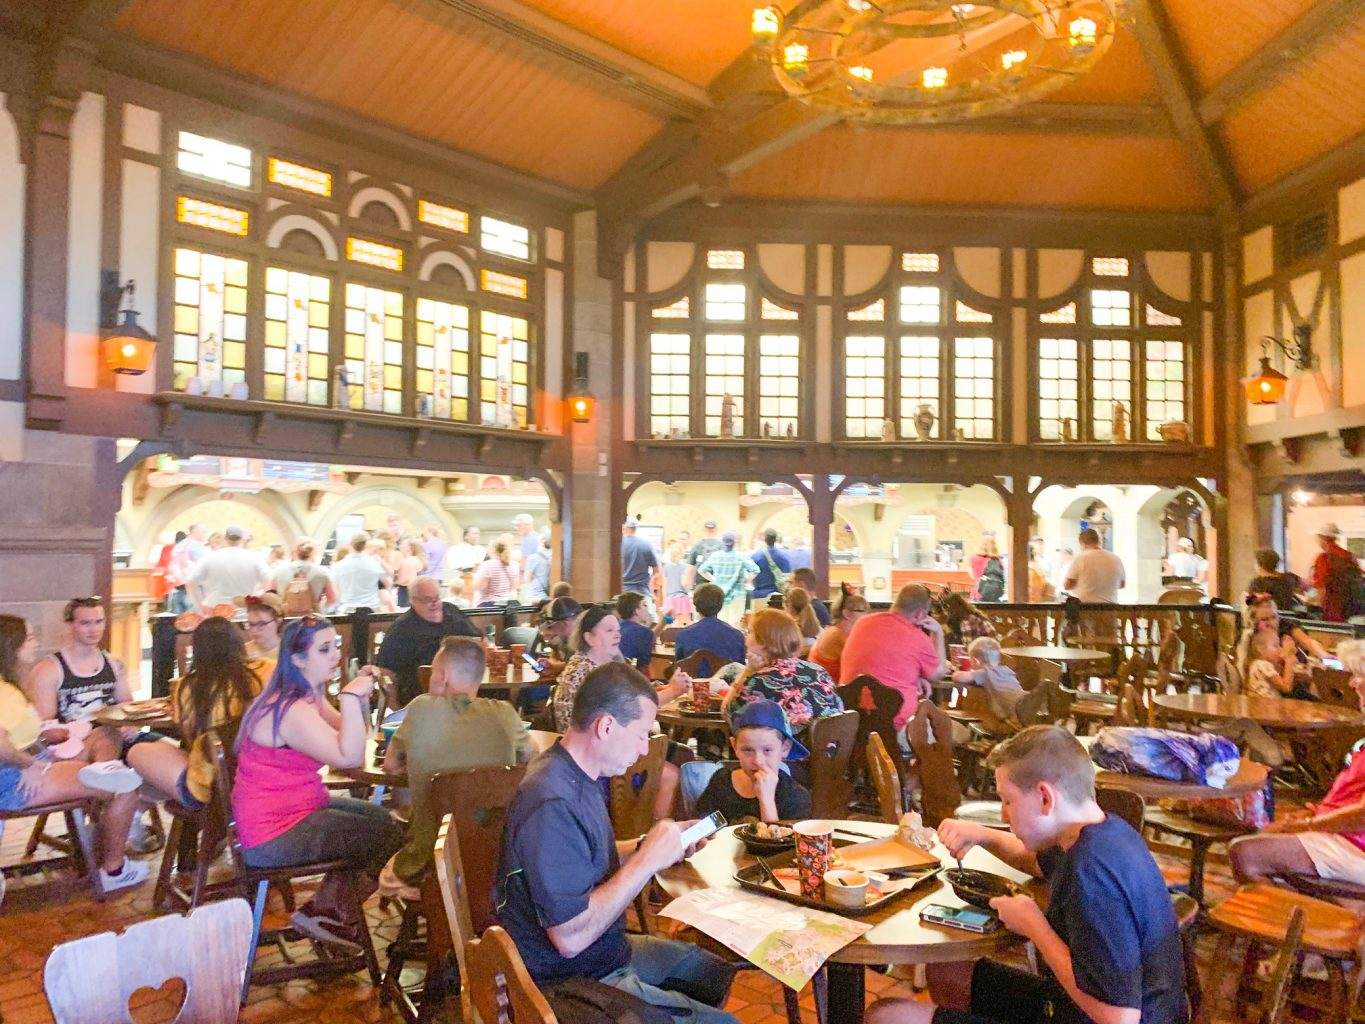 Pinocchio Village Haus is one of the worst Disney dining options at Magic Kingdom